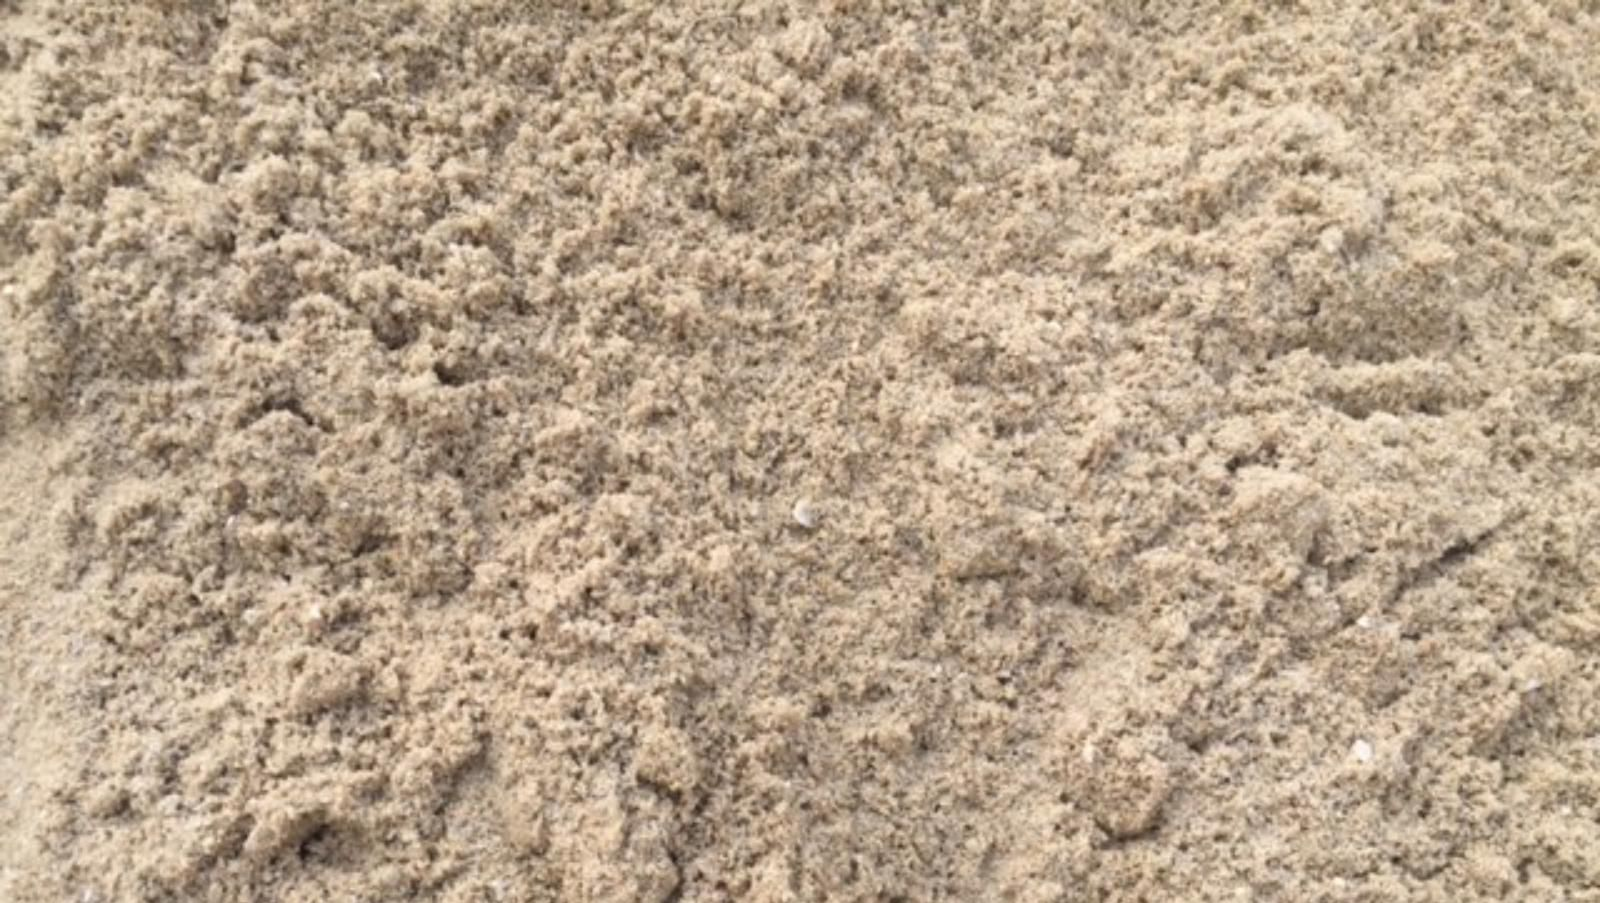 Silica Cattle Bed Sand